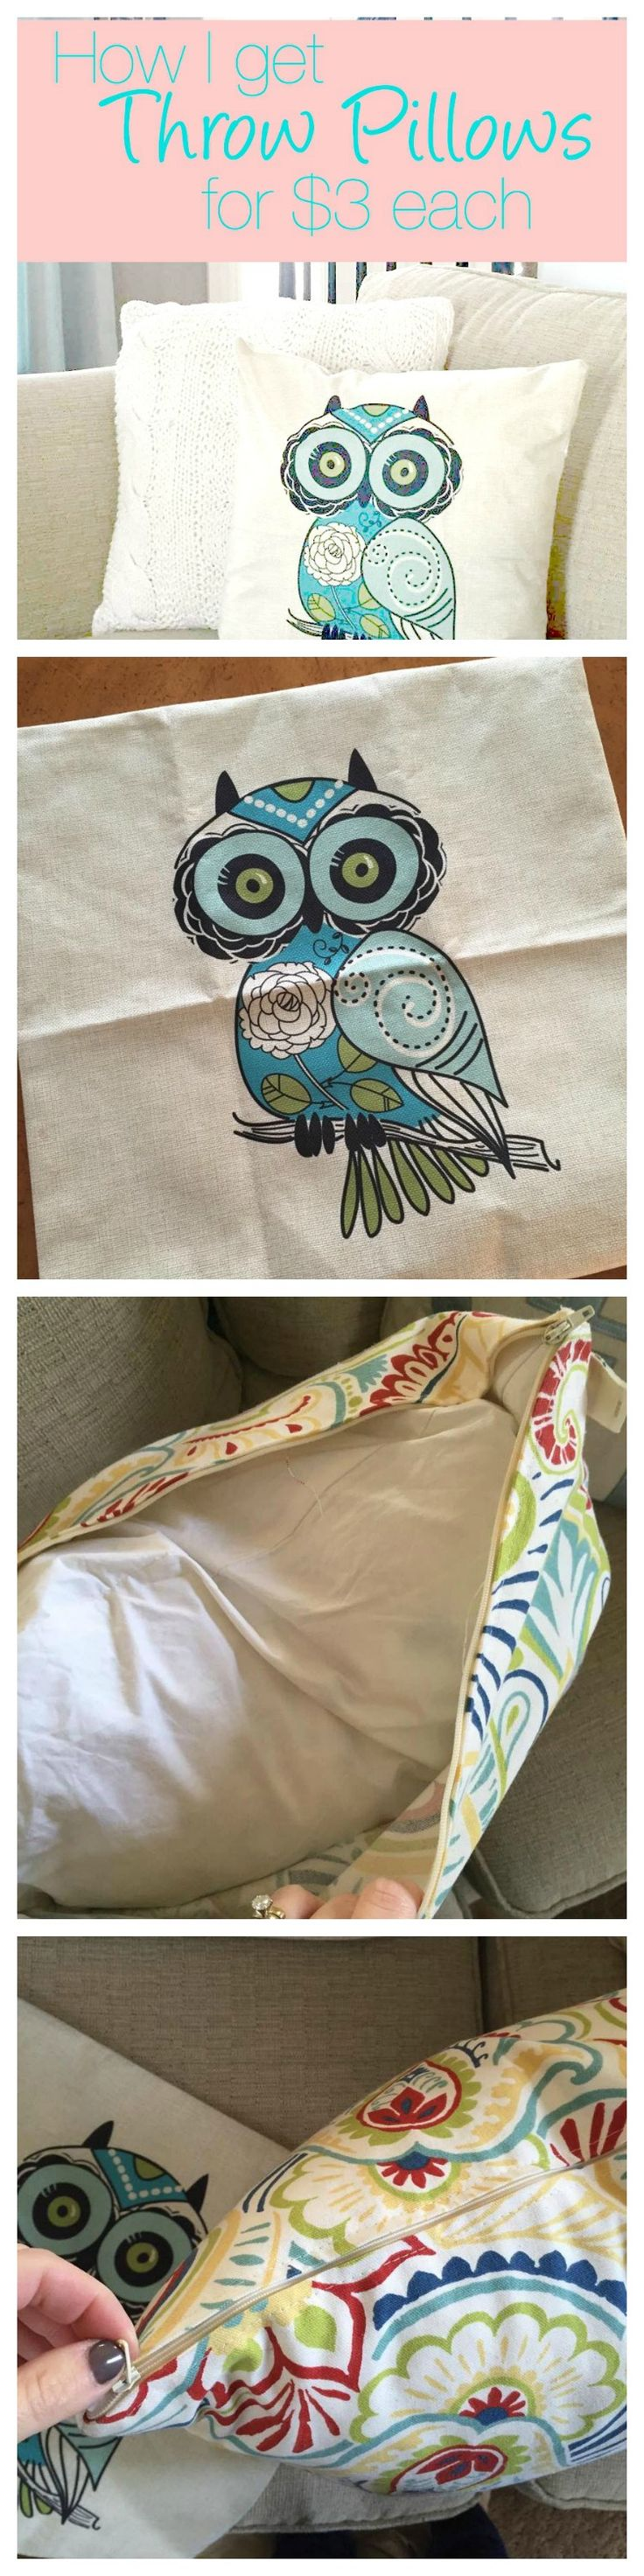 Trying to redecorate a room on a budget? These are pillows decorative on couch (es) that are cheap - but they are seriously worth every penny! You can get new throw pillows for less than $3 each - unreal! So glad I know this secret! http://couponcravings.com/adorable-pillow-covers-on-sale-for-only-3-each/